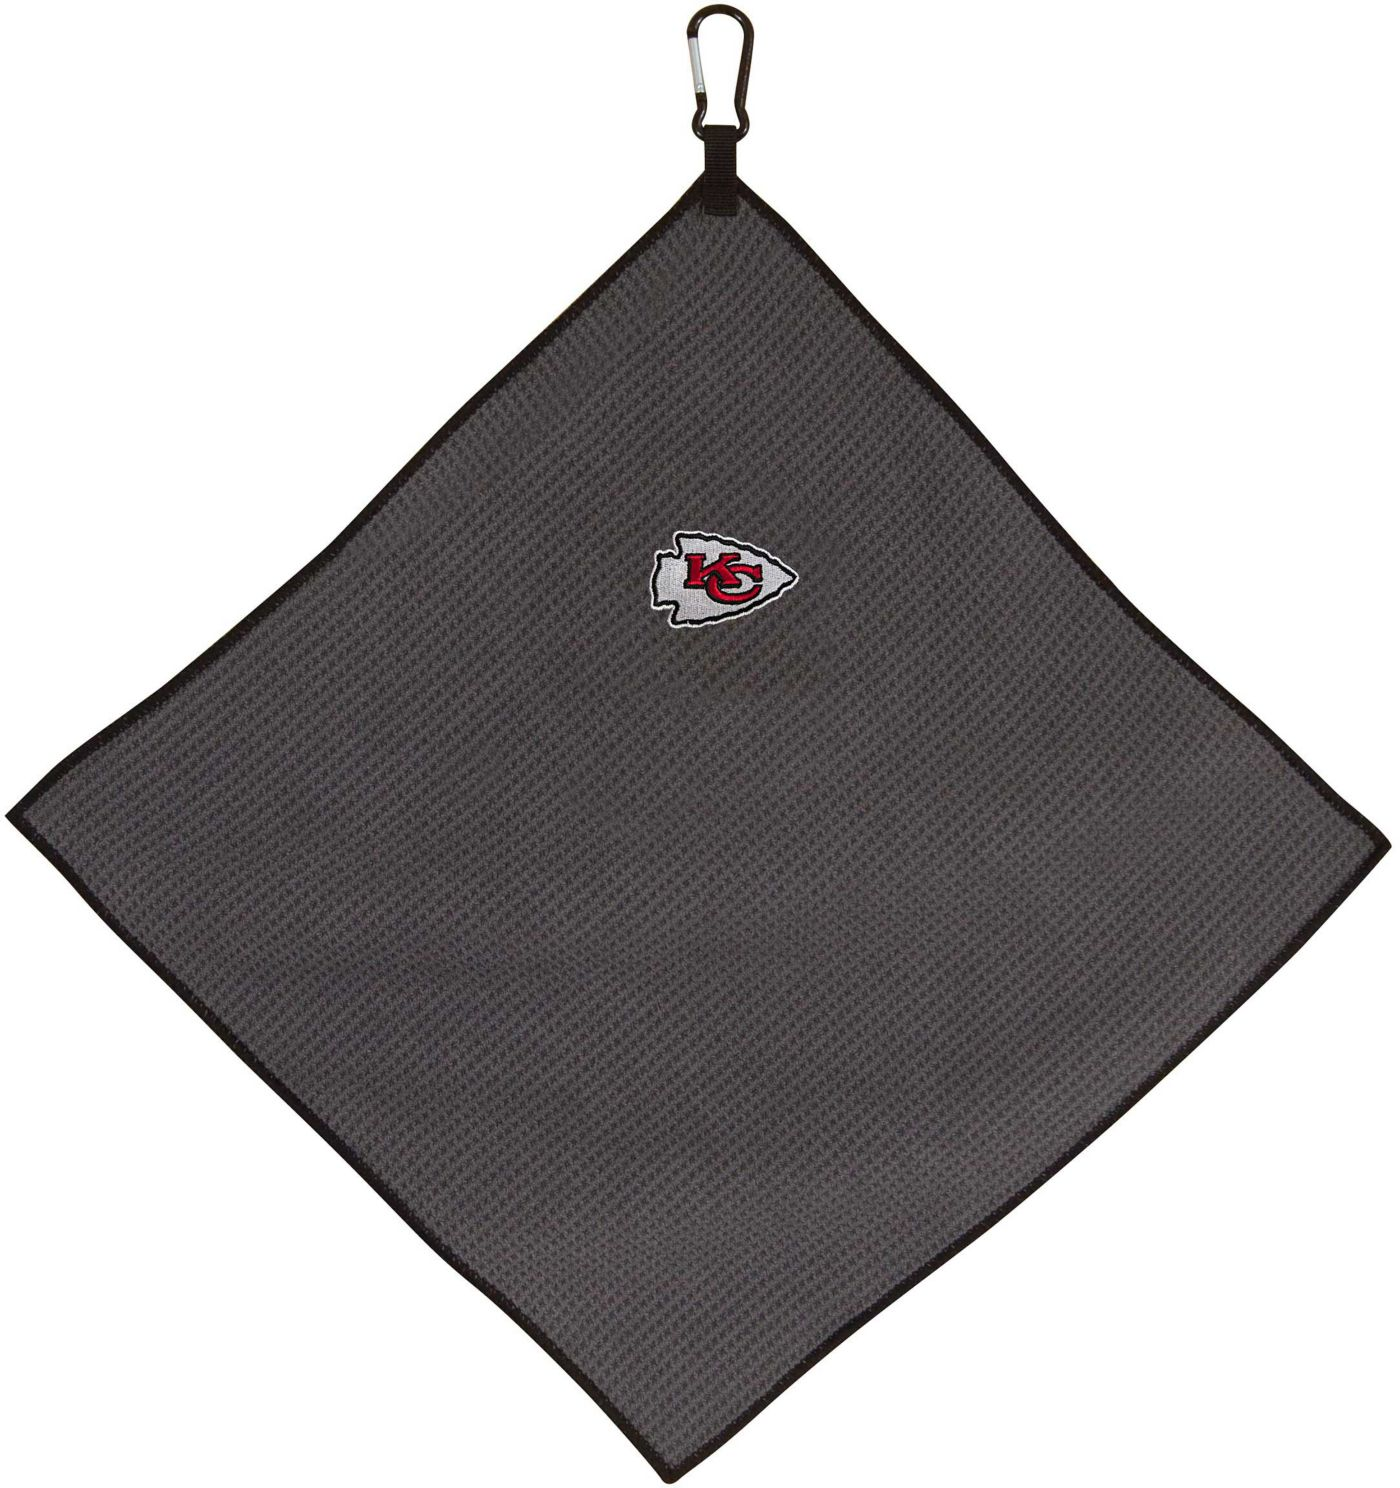 "Team Effort Kansas City Chiefs 15"" x 15"" Microfiber Golf Towel"